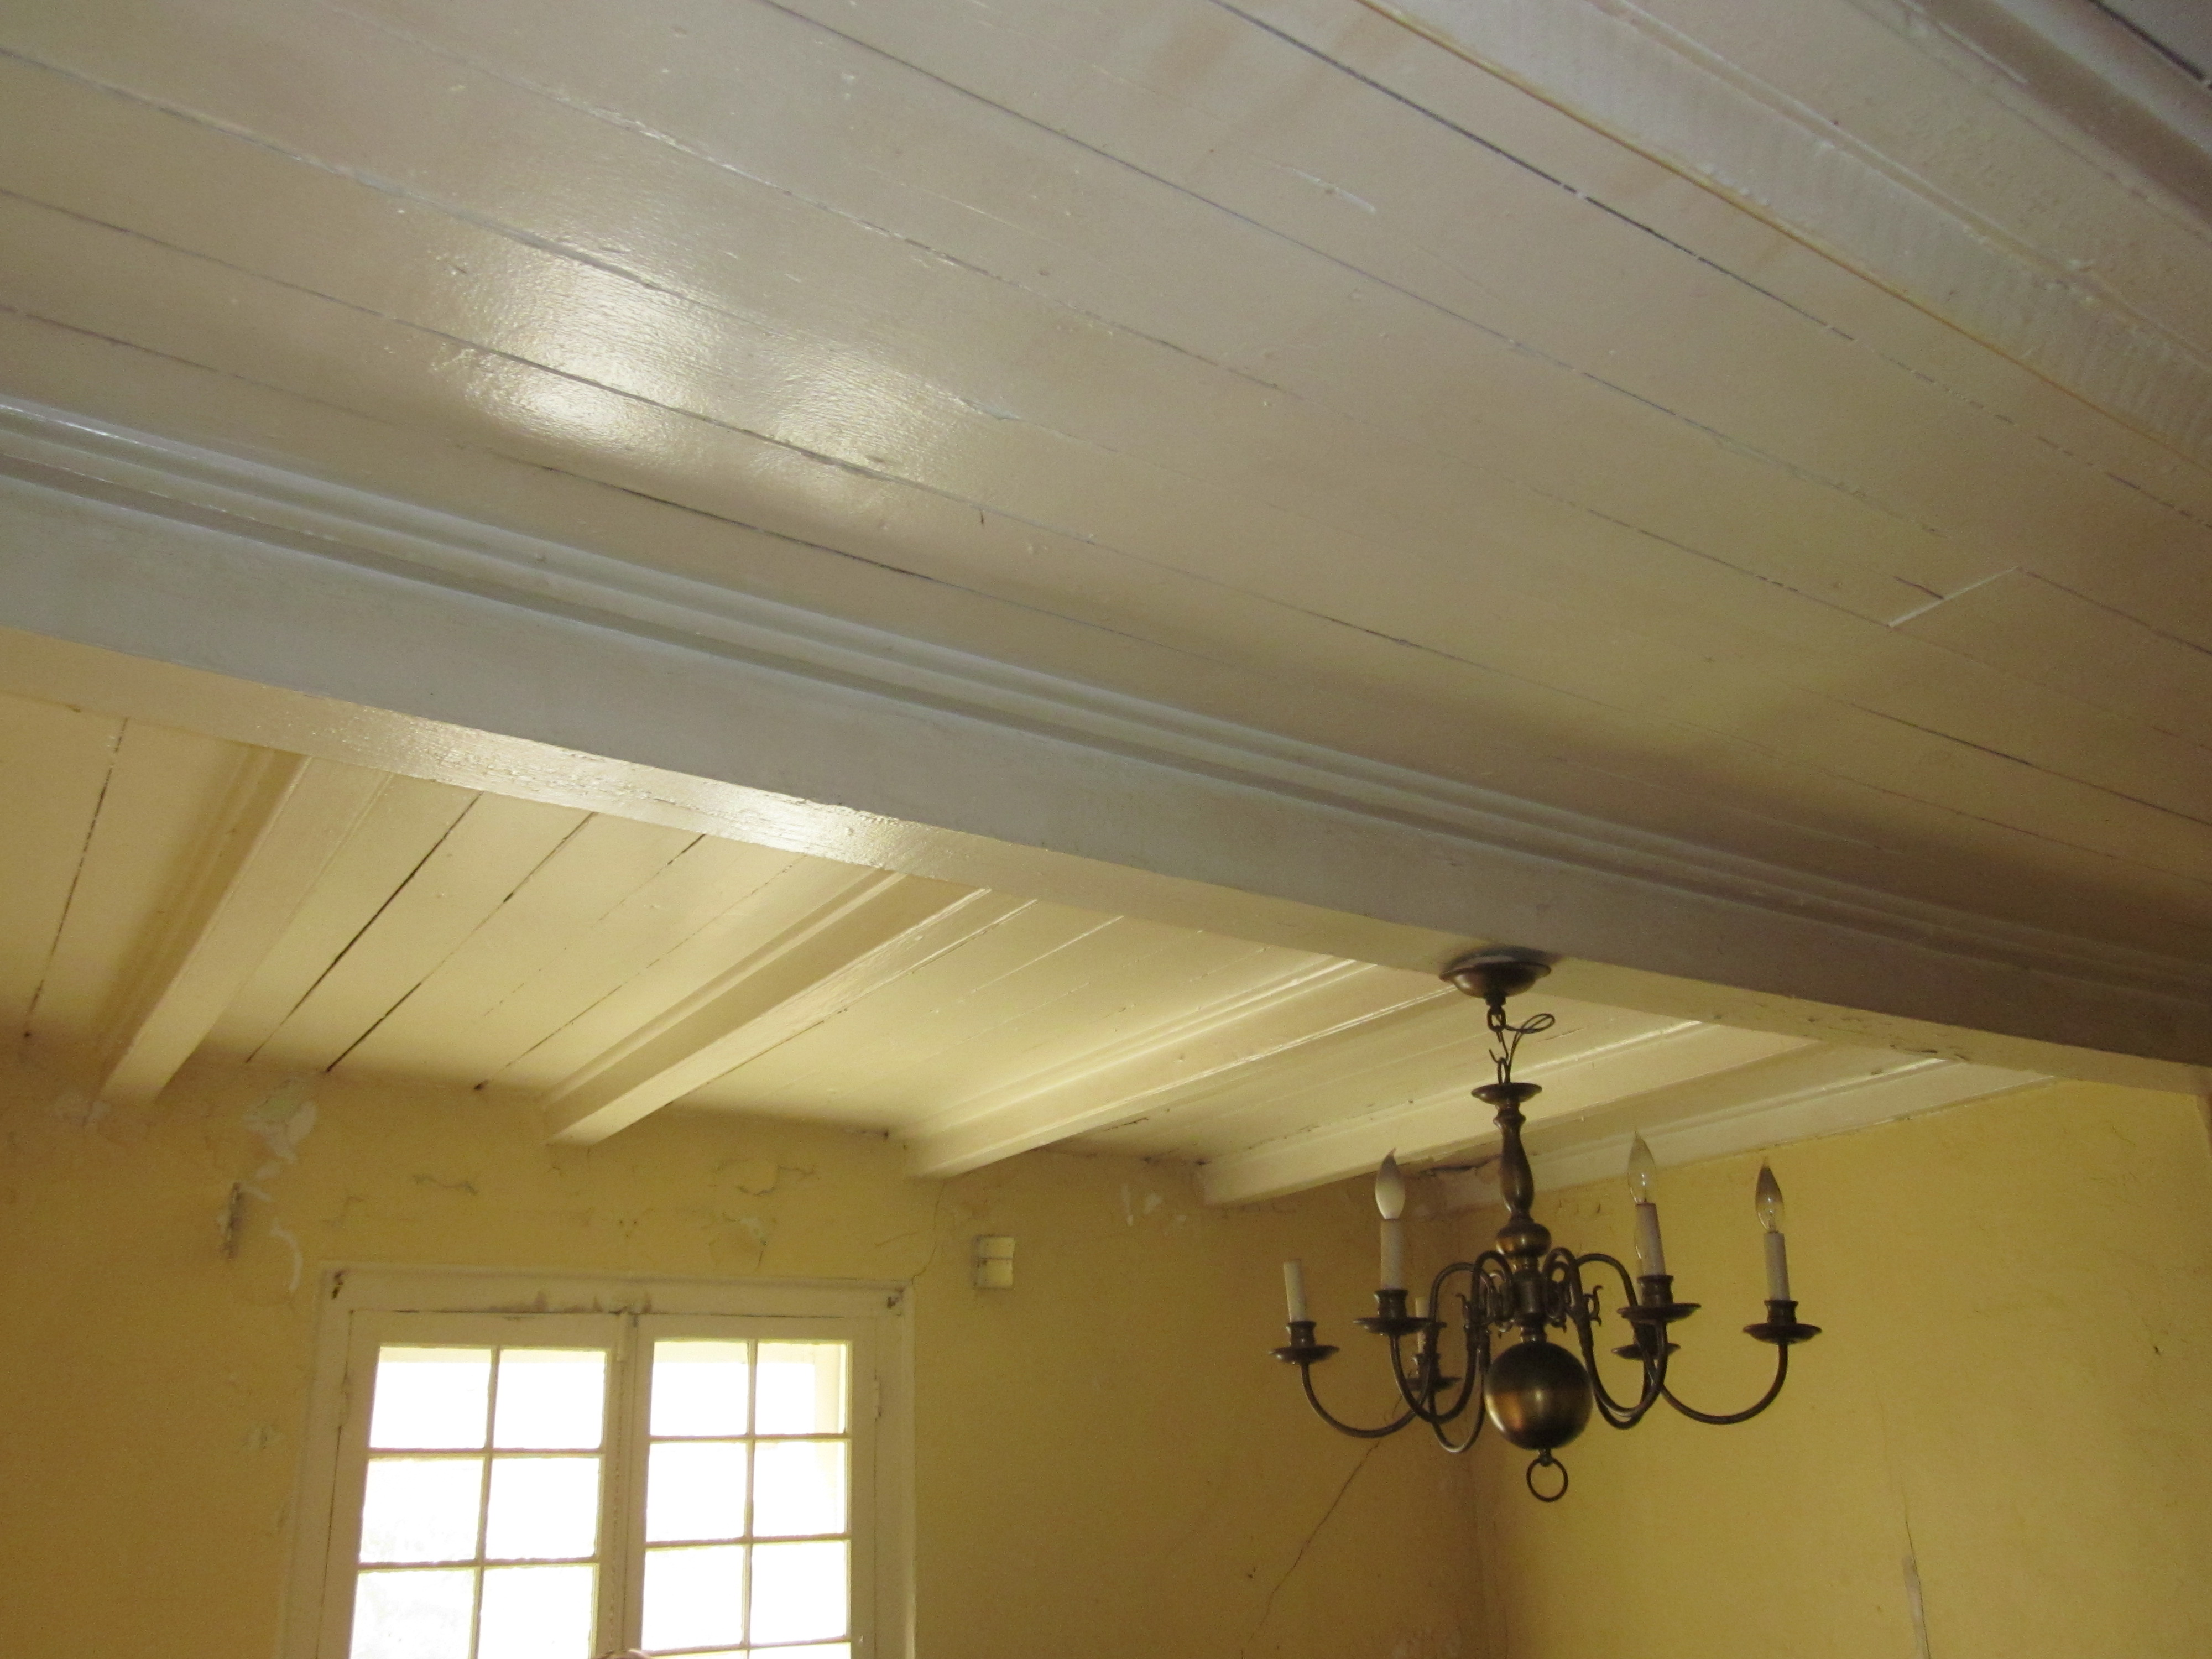 file nmp 1780s house interior dining room ceiling jpg wikimedia